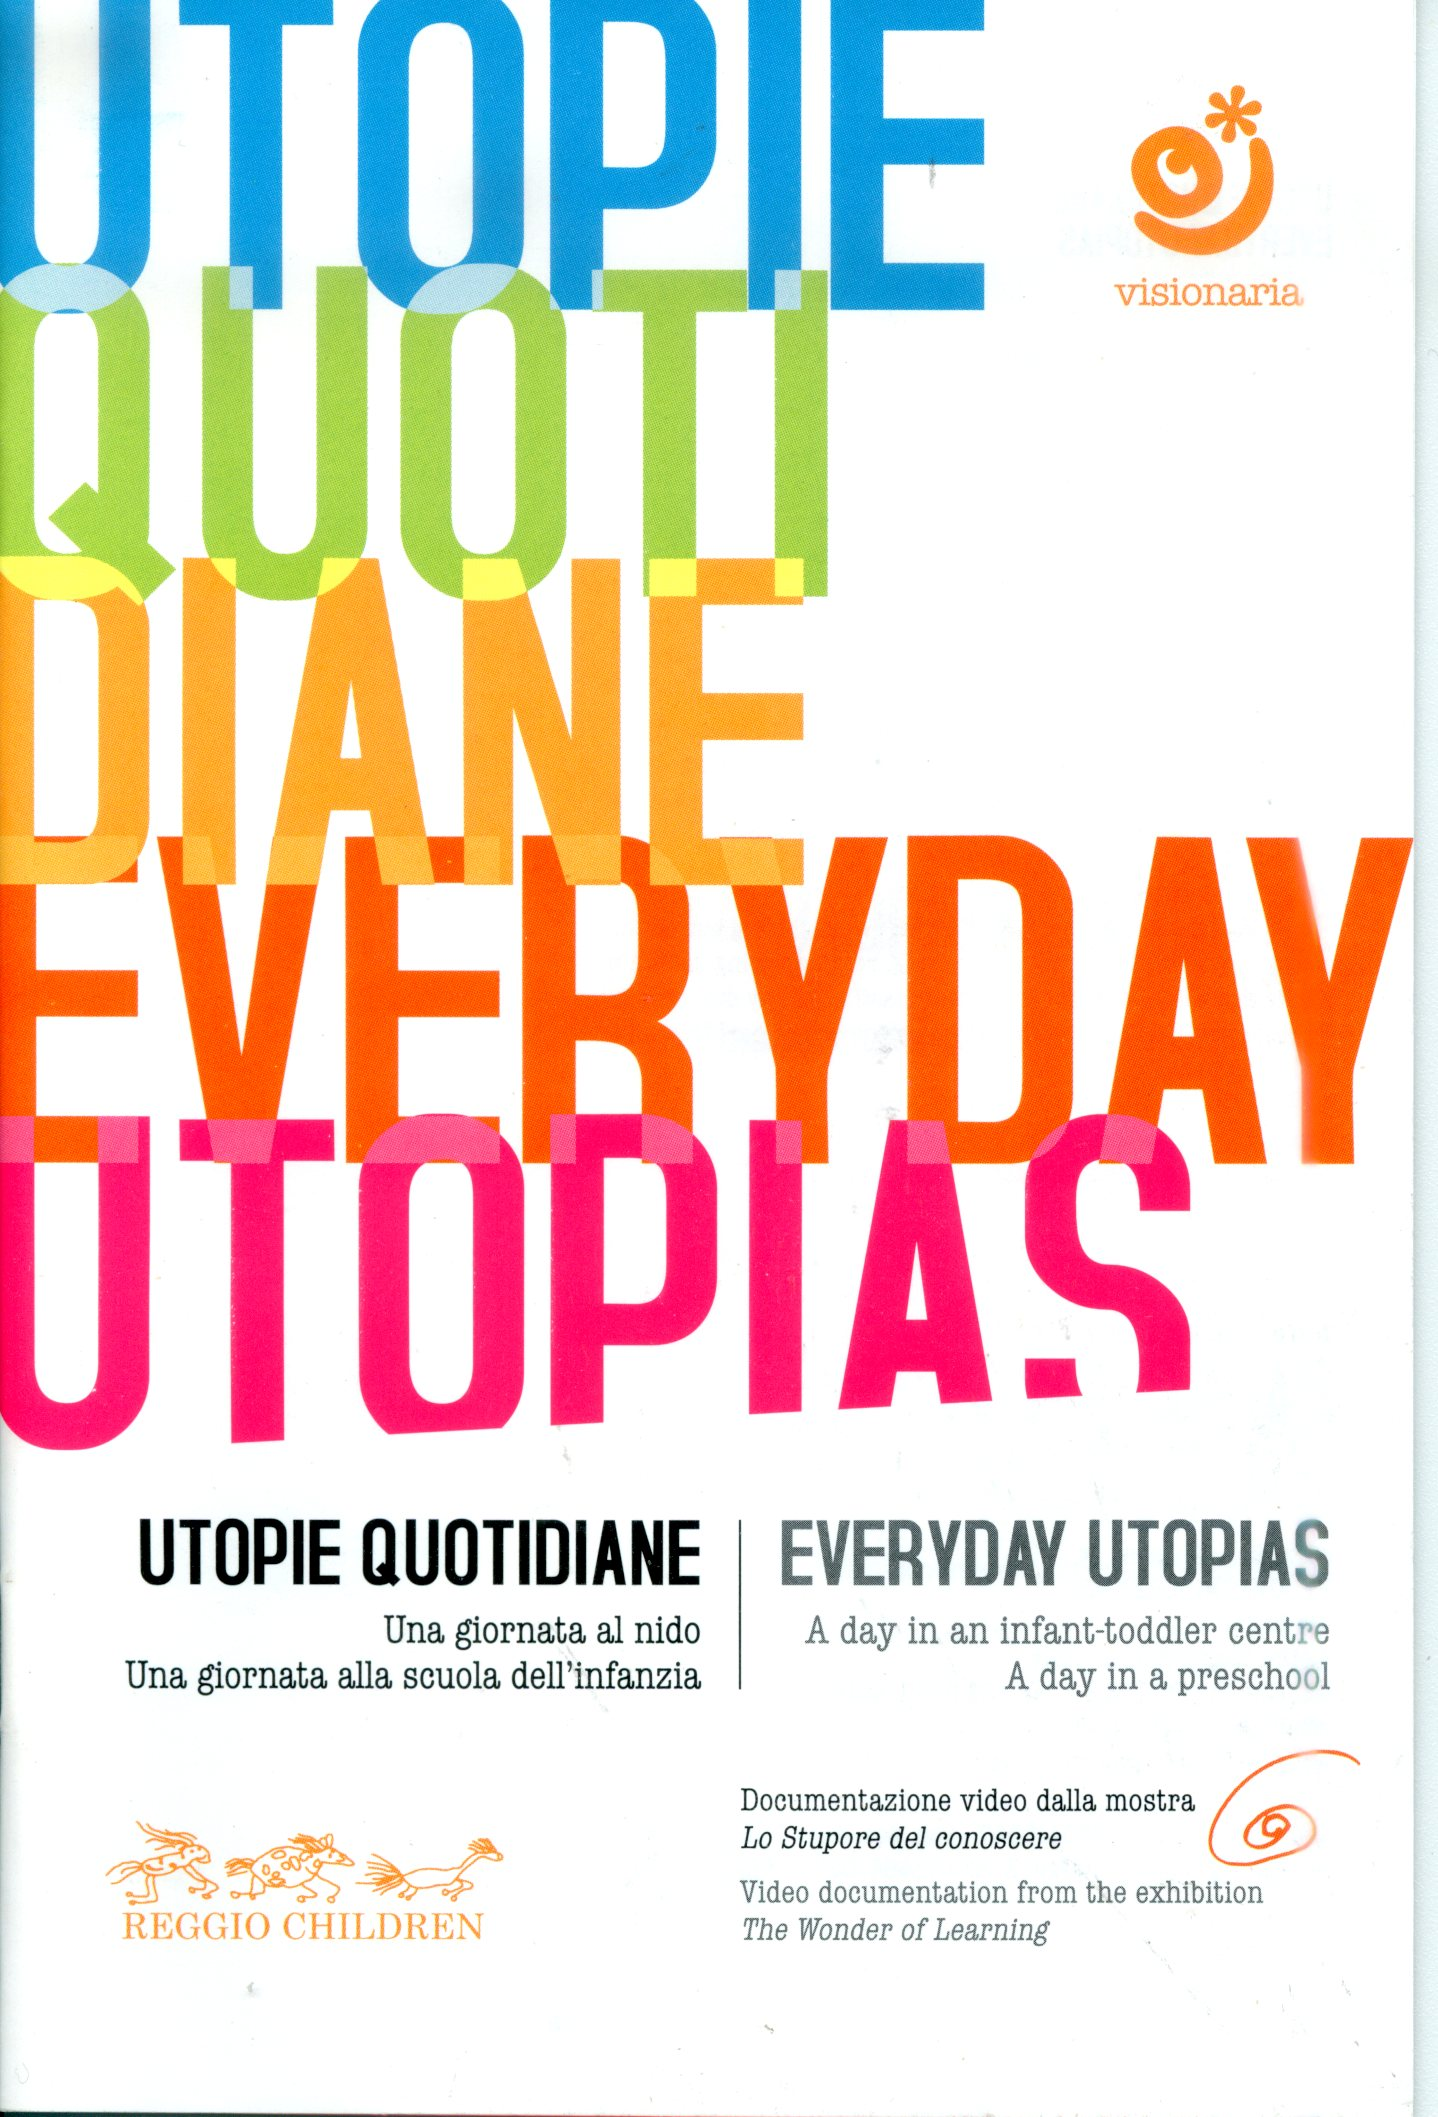 Utopie quotidiane Everyday utopias.